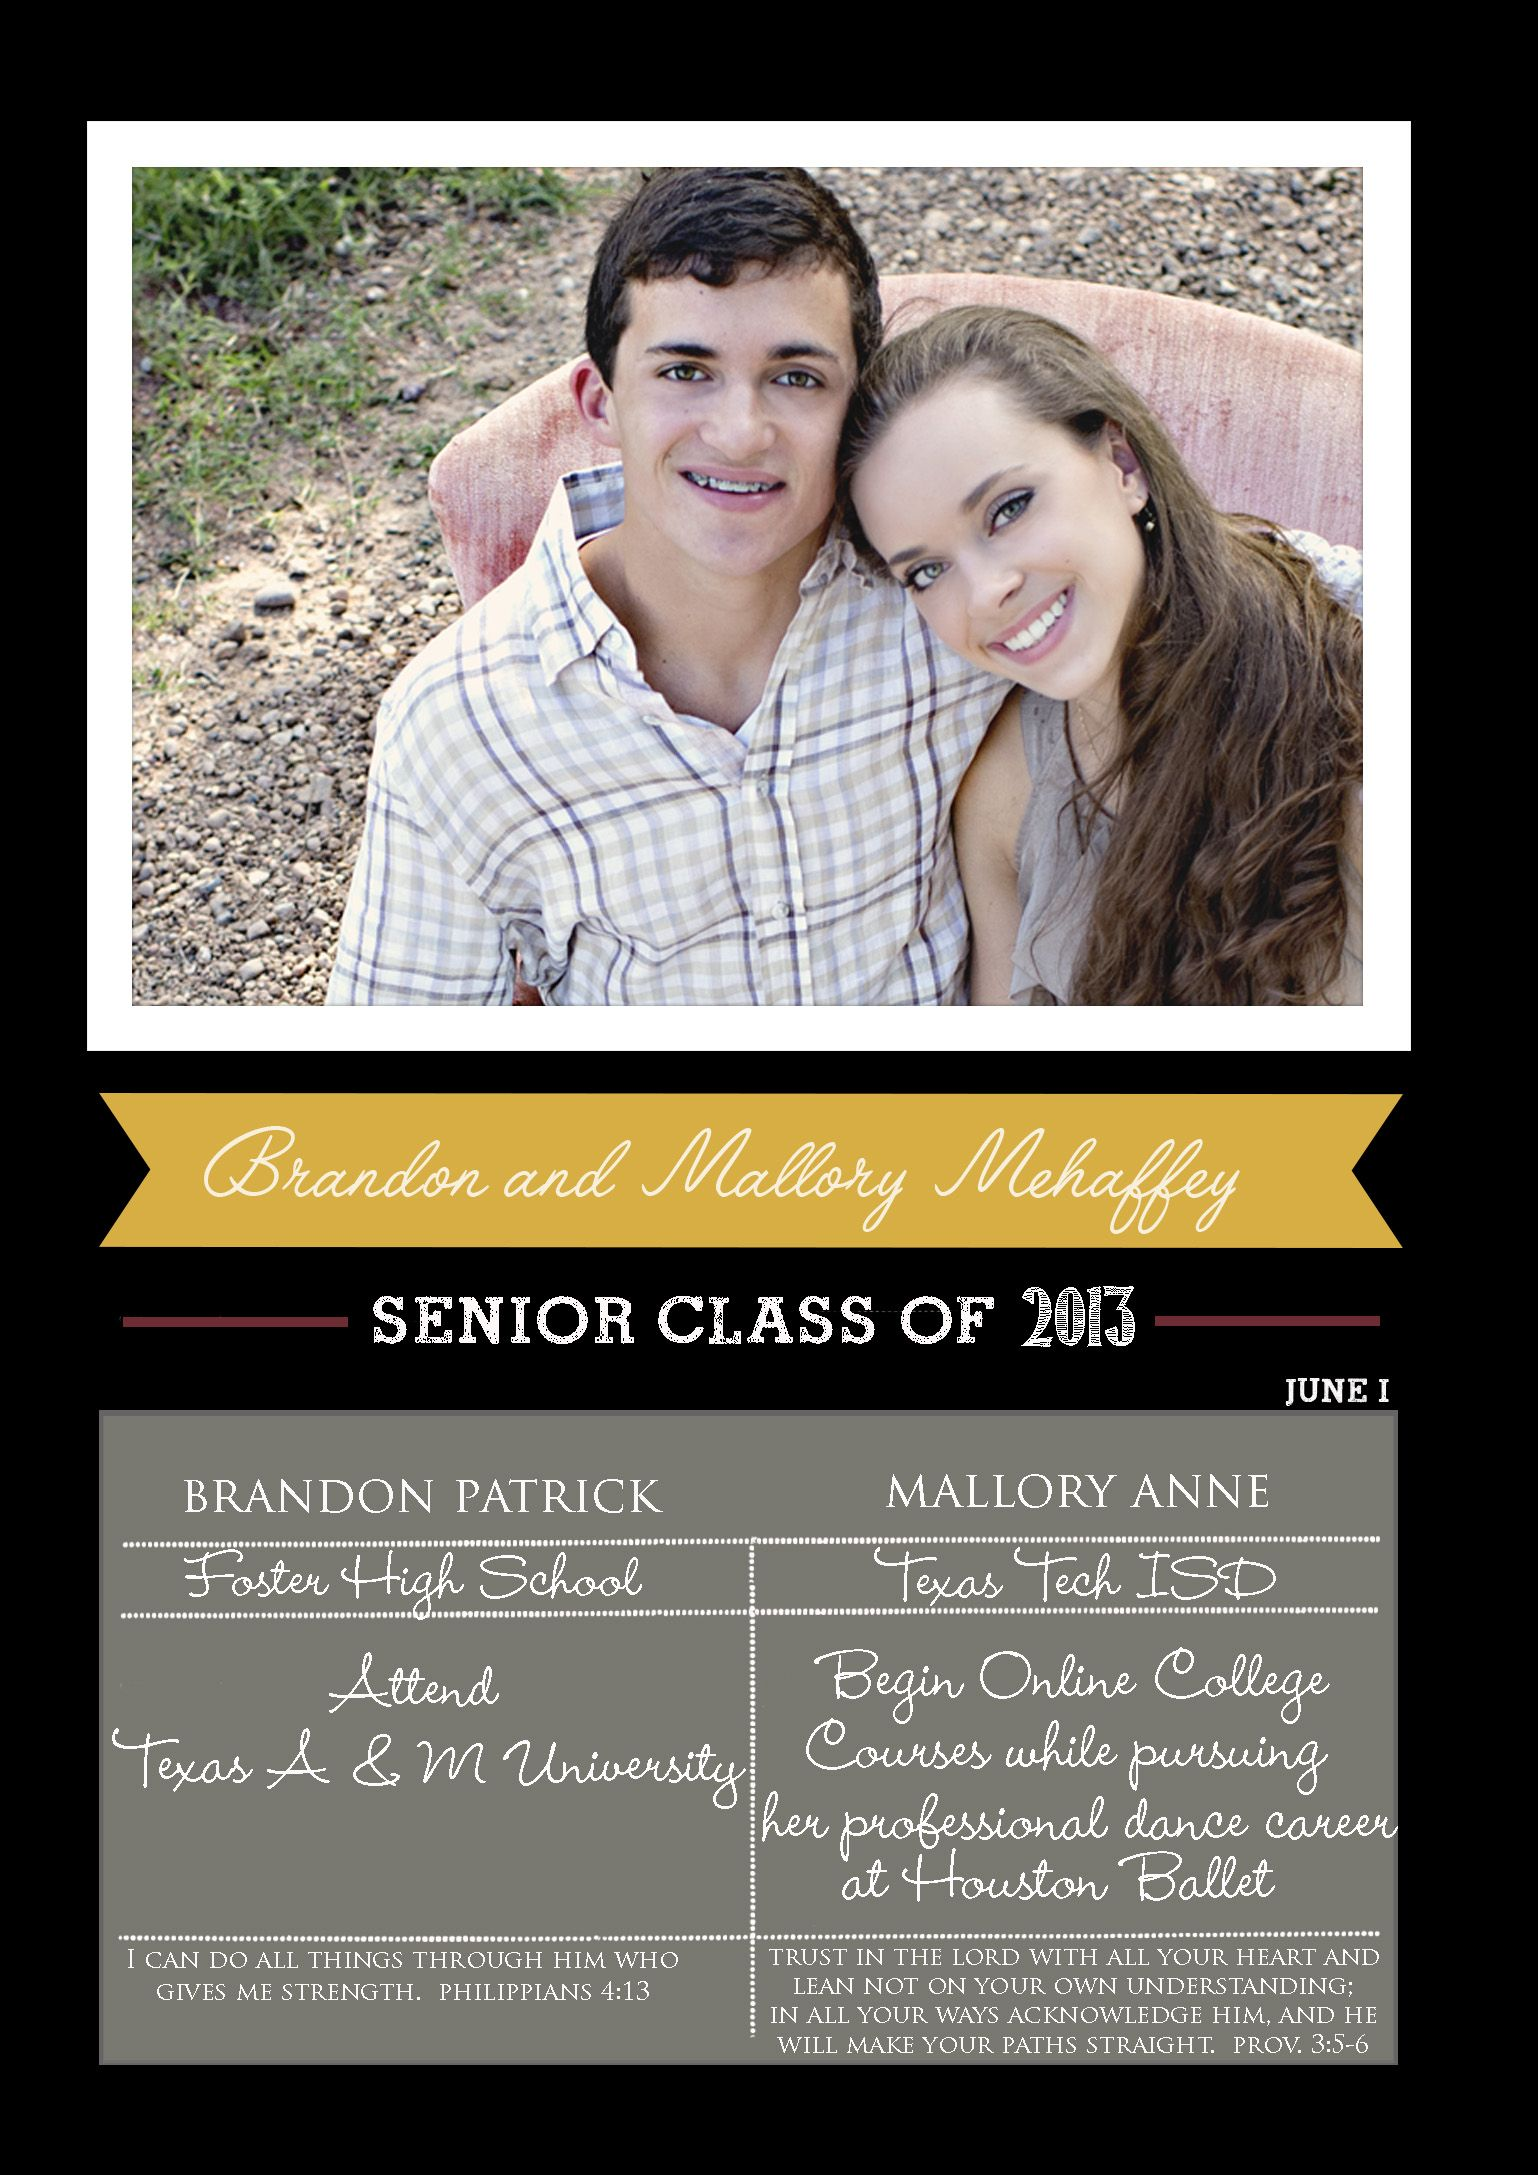 foster hs graduation announcement for twins brandon and mallory